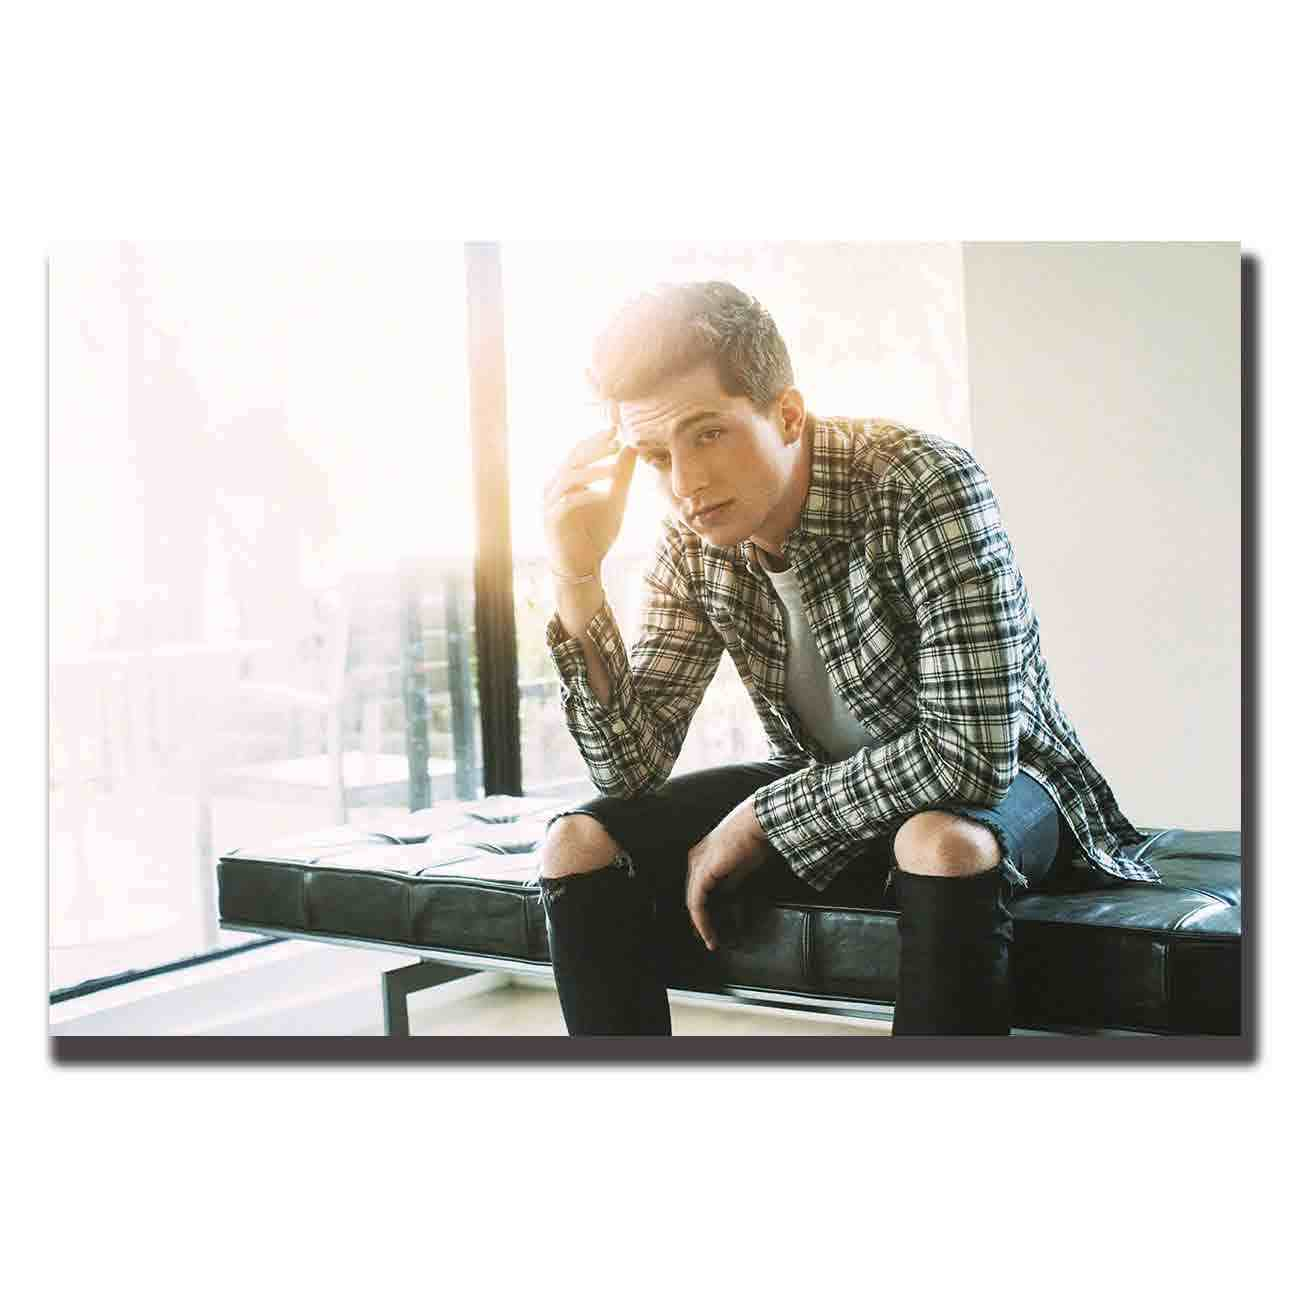 Art Posters Wall Canvas  room Decor 24x36 27x40 20x30 Charlie Puth / Music Singer Star painting pictures